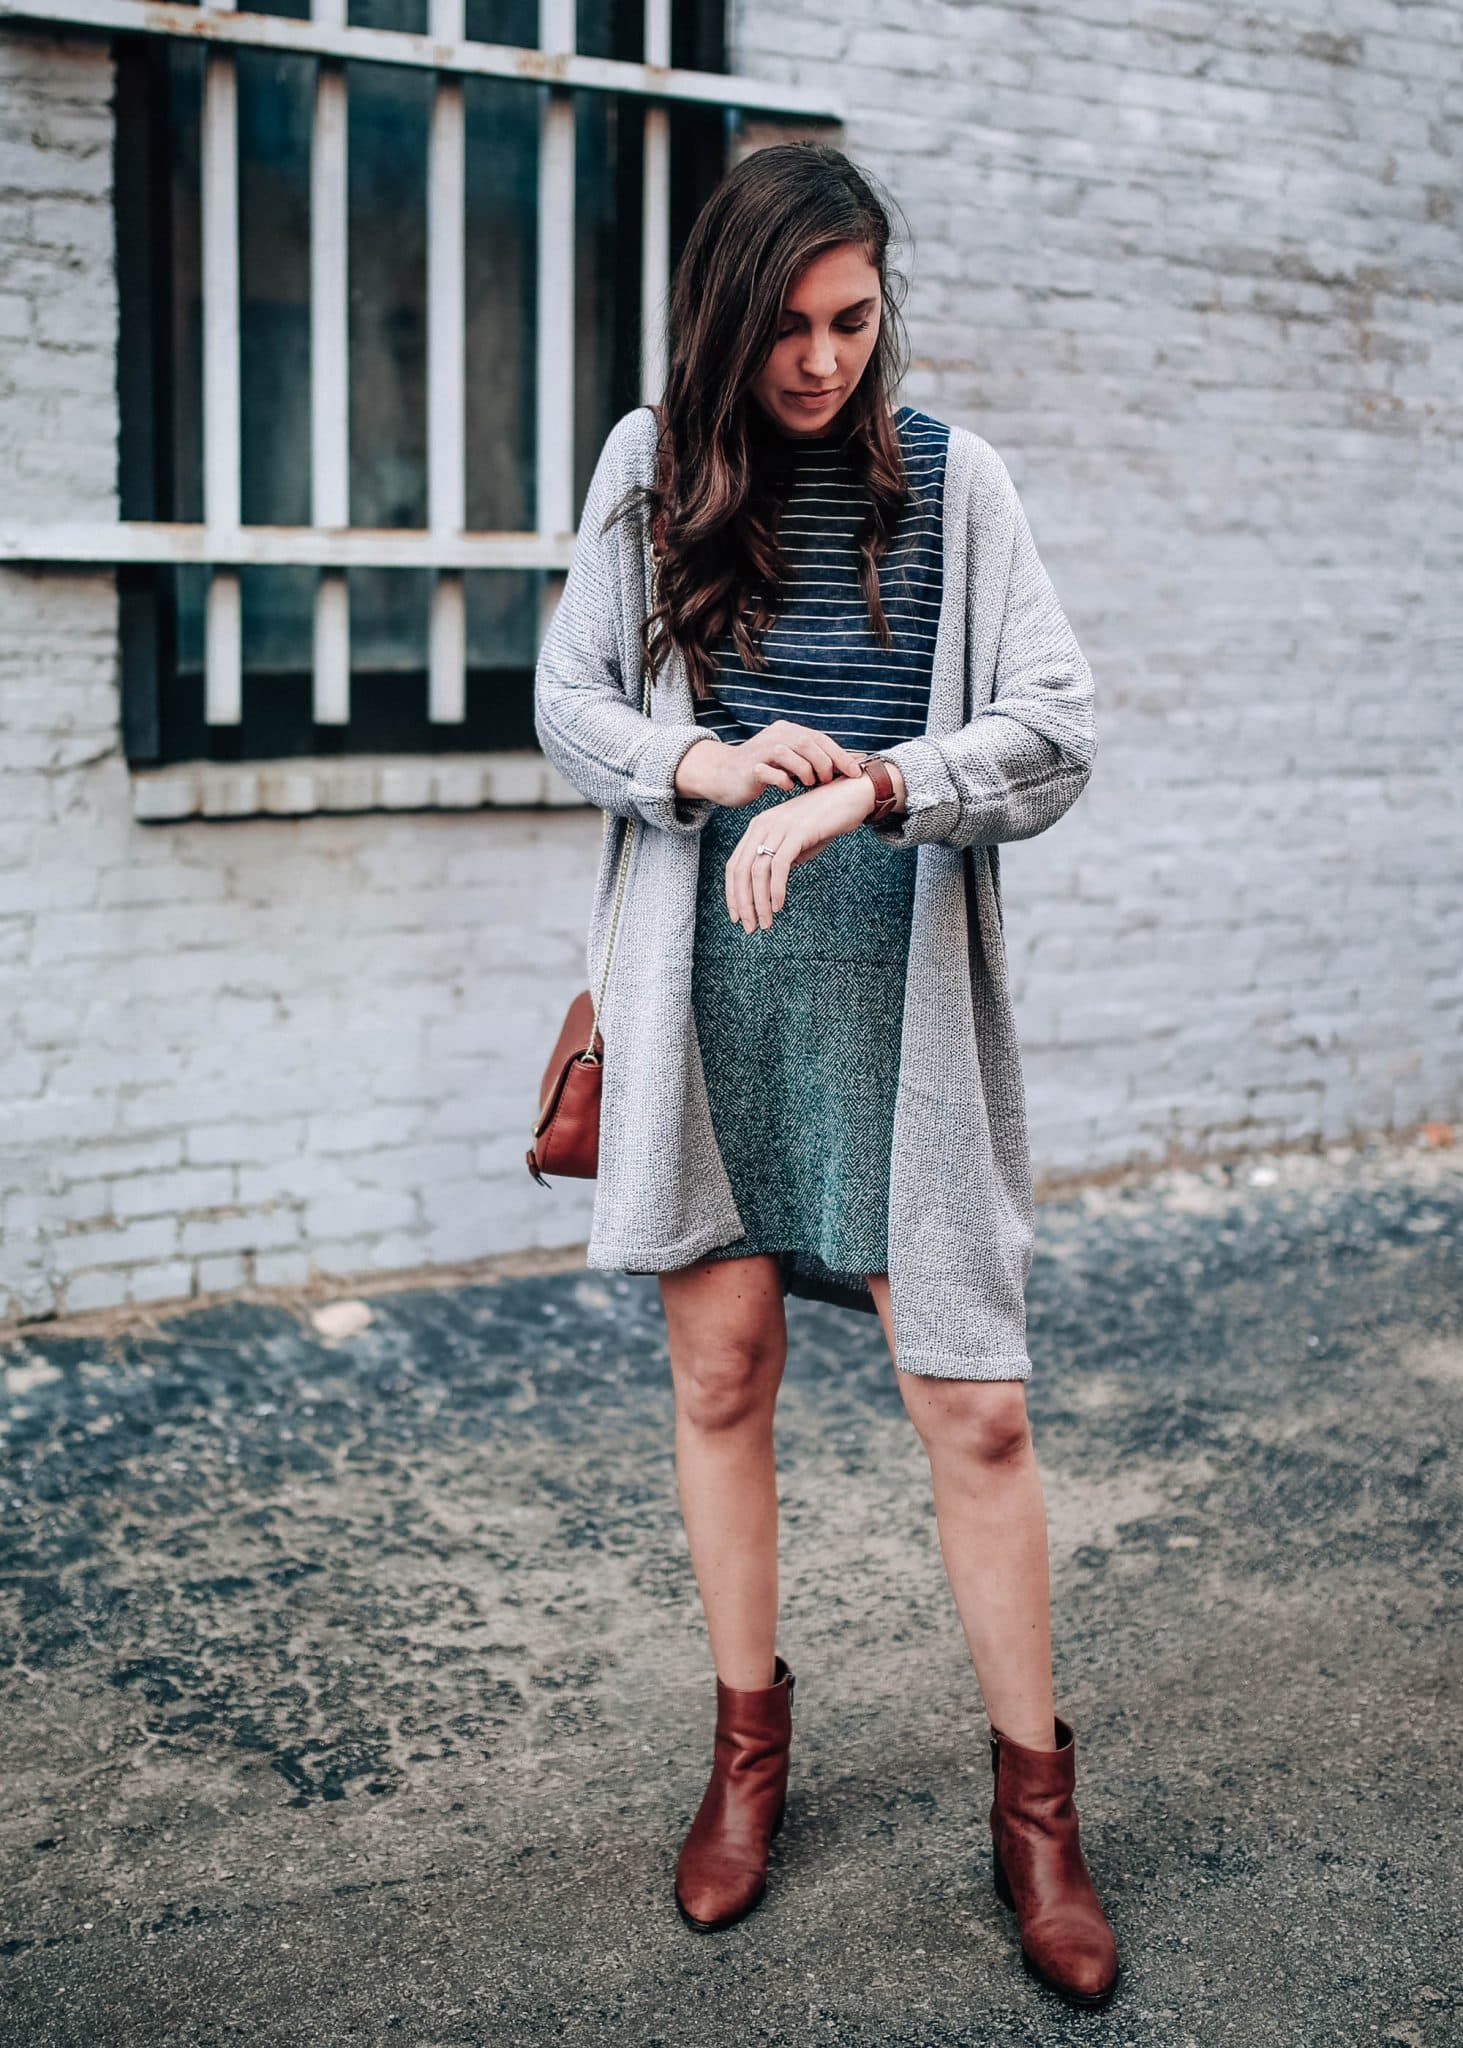 65b6a89ea6 How To Wear A Short Pleated Skirt In The Winter - Data Dynamic AG